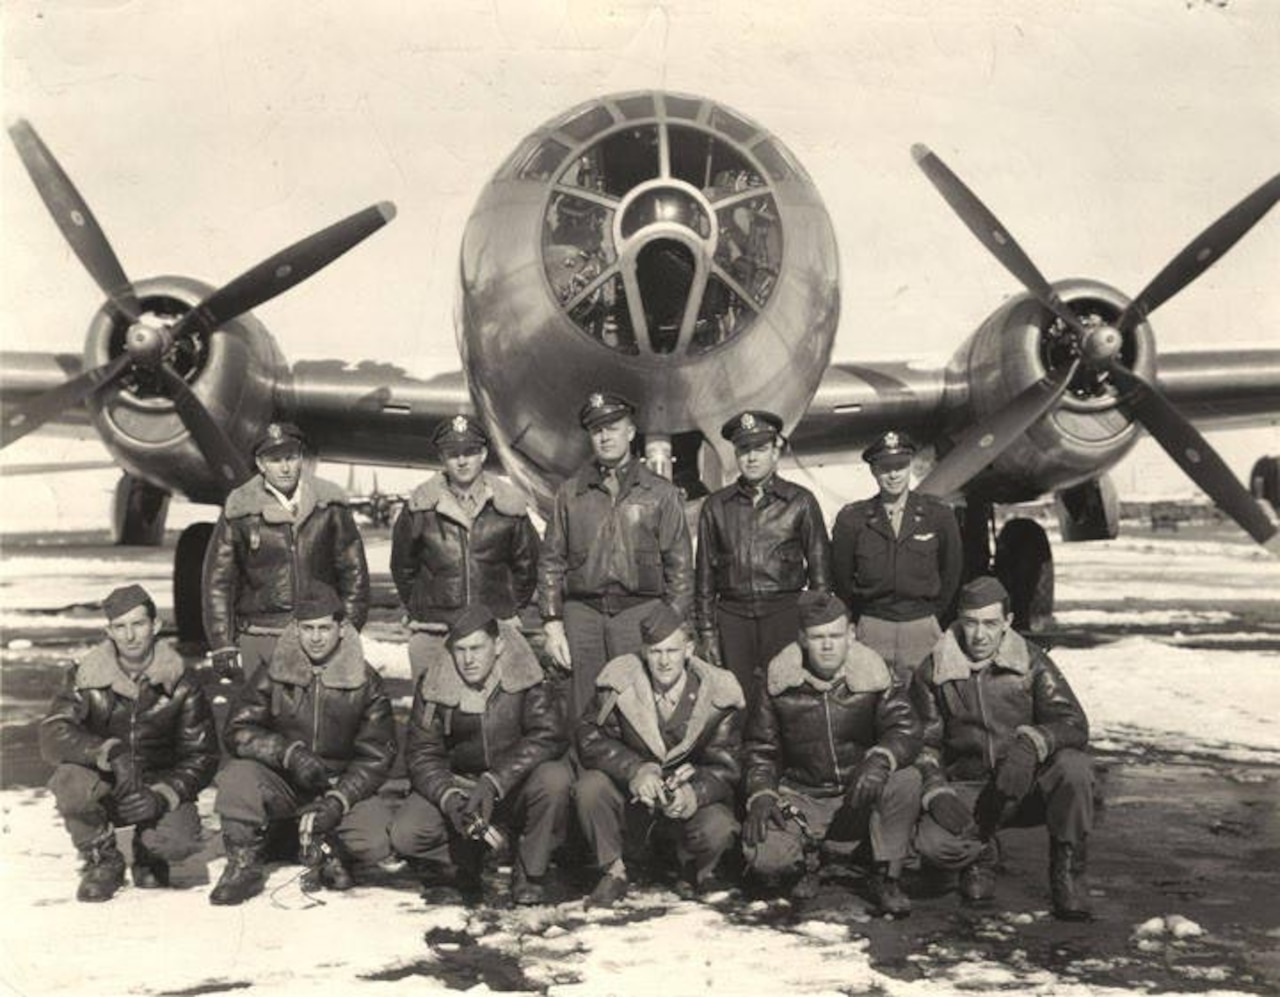 Eleven men pose in front of a B-29 bomber.